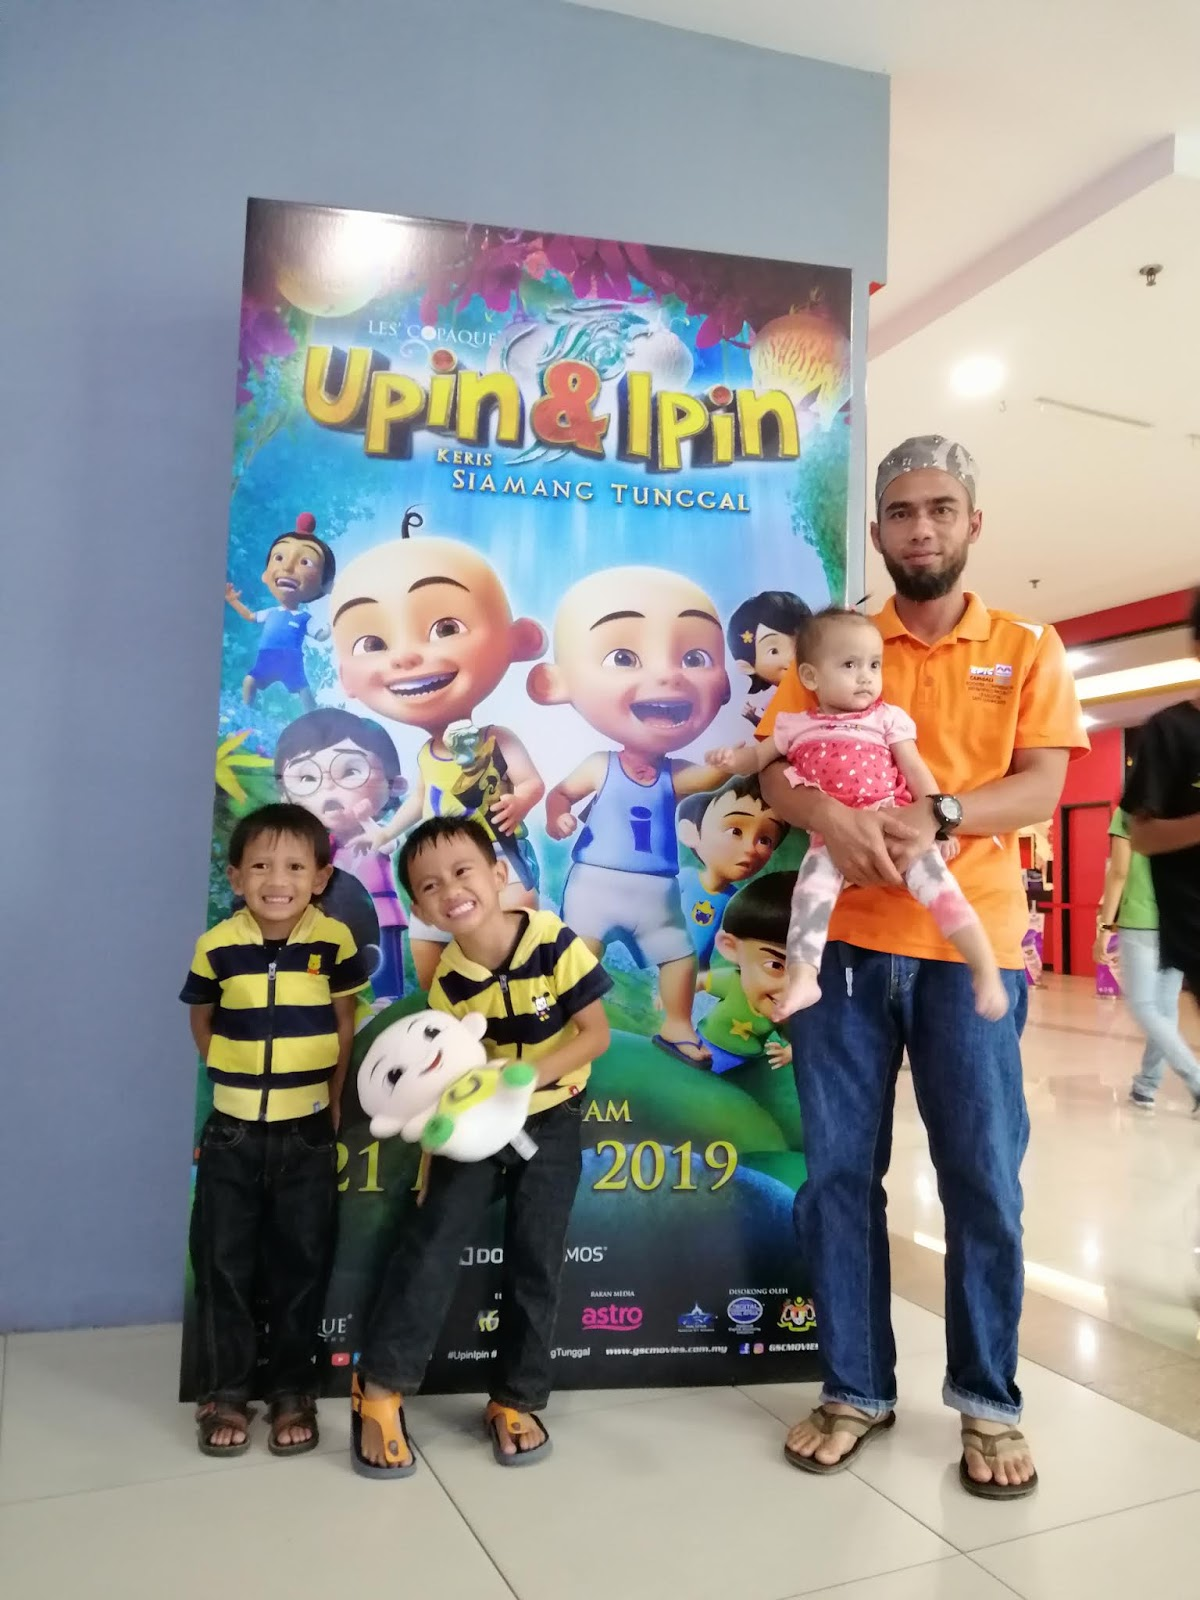 Review movie upin ipin keris siamang tunggal 2019